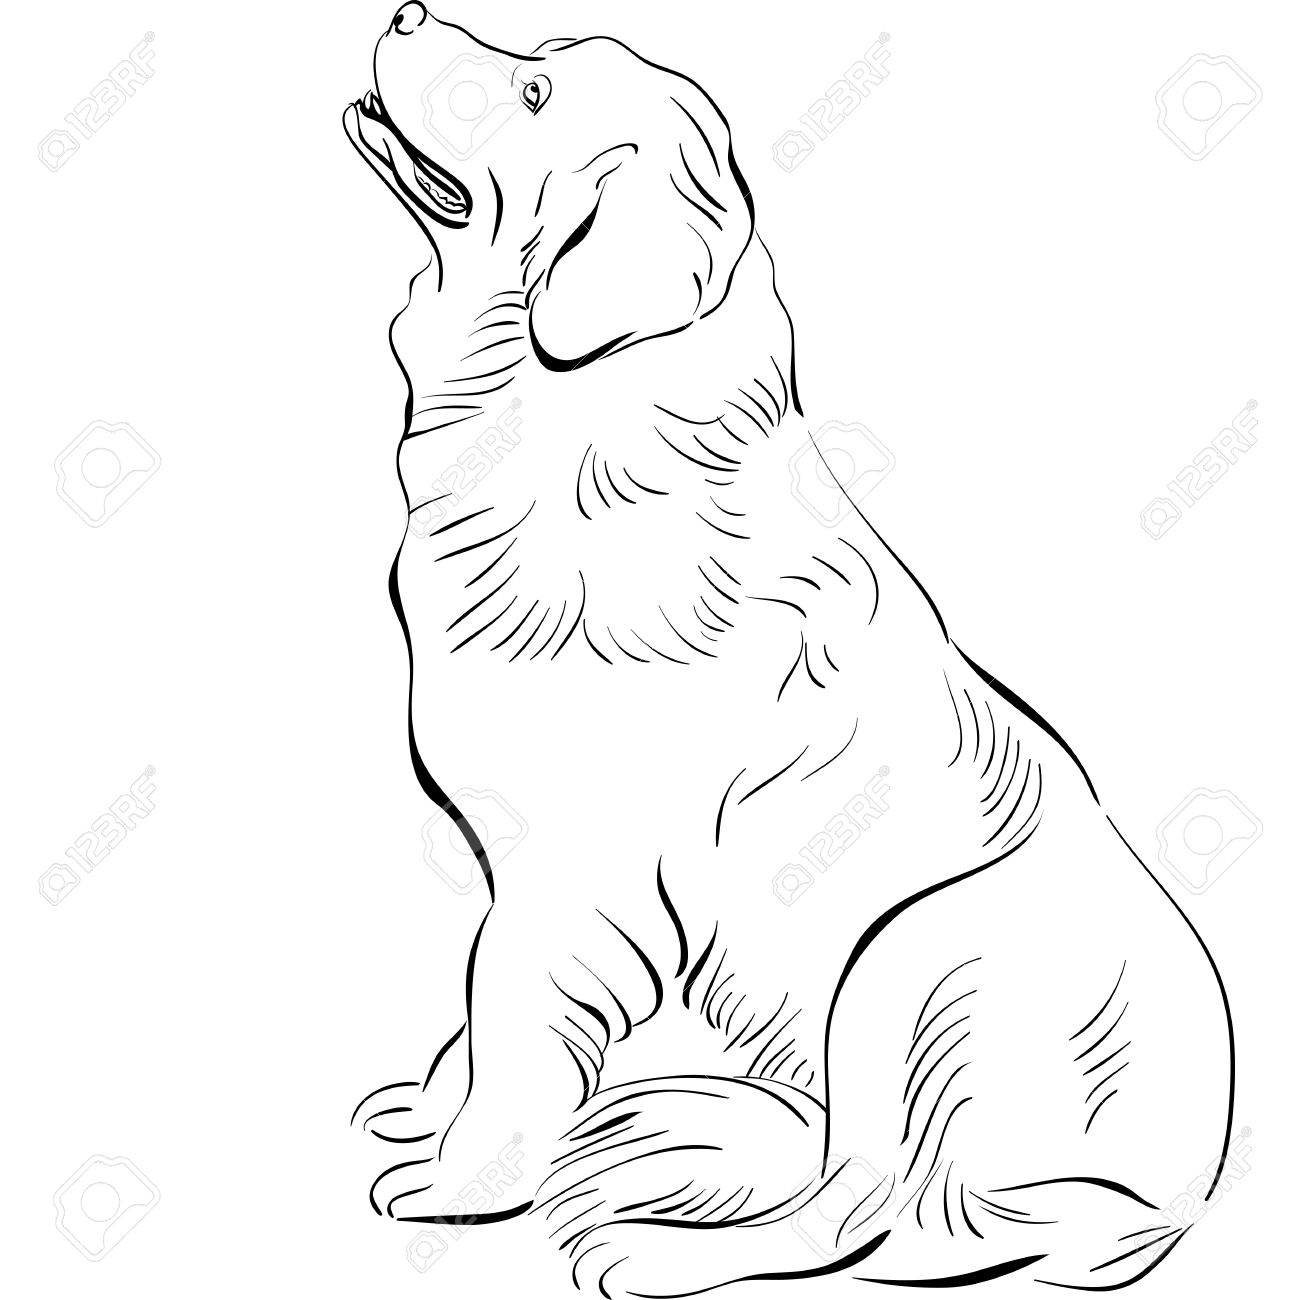 1300x1300 Black And White Sketch Of The Dog Newfoundland Hound Breed Sitting